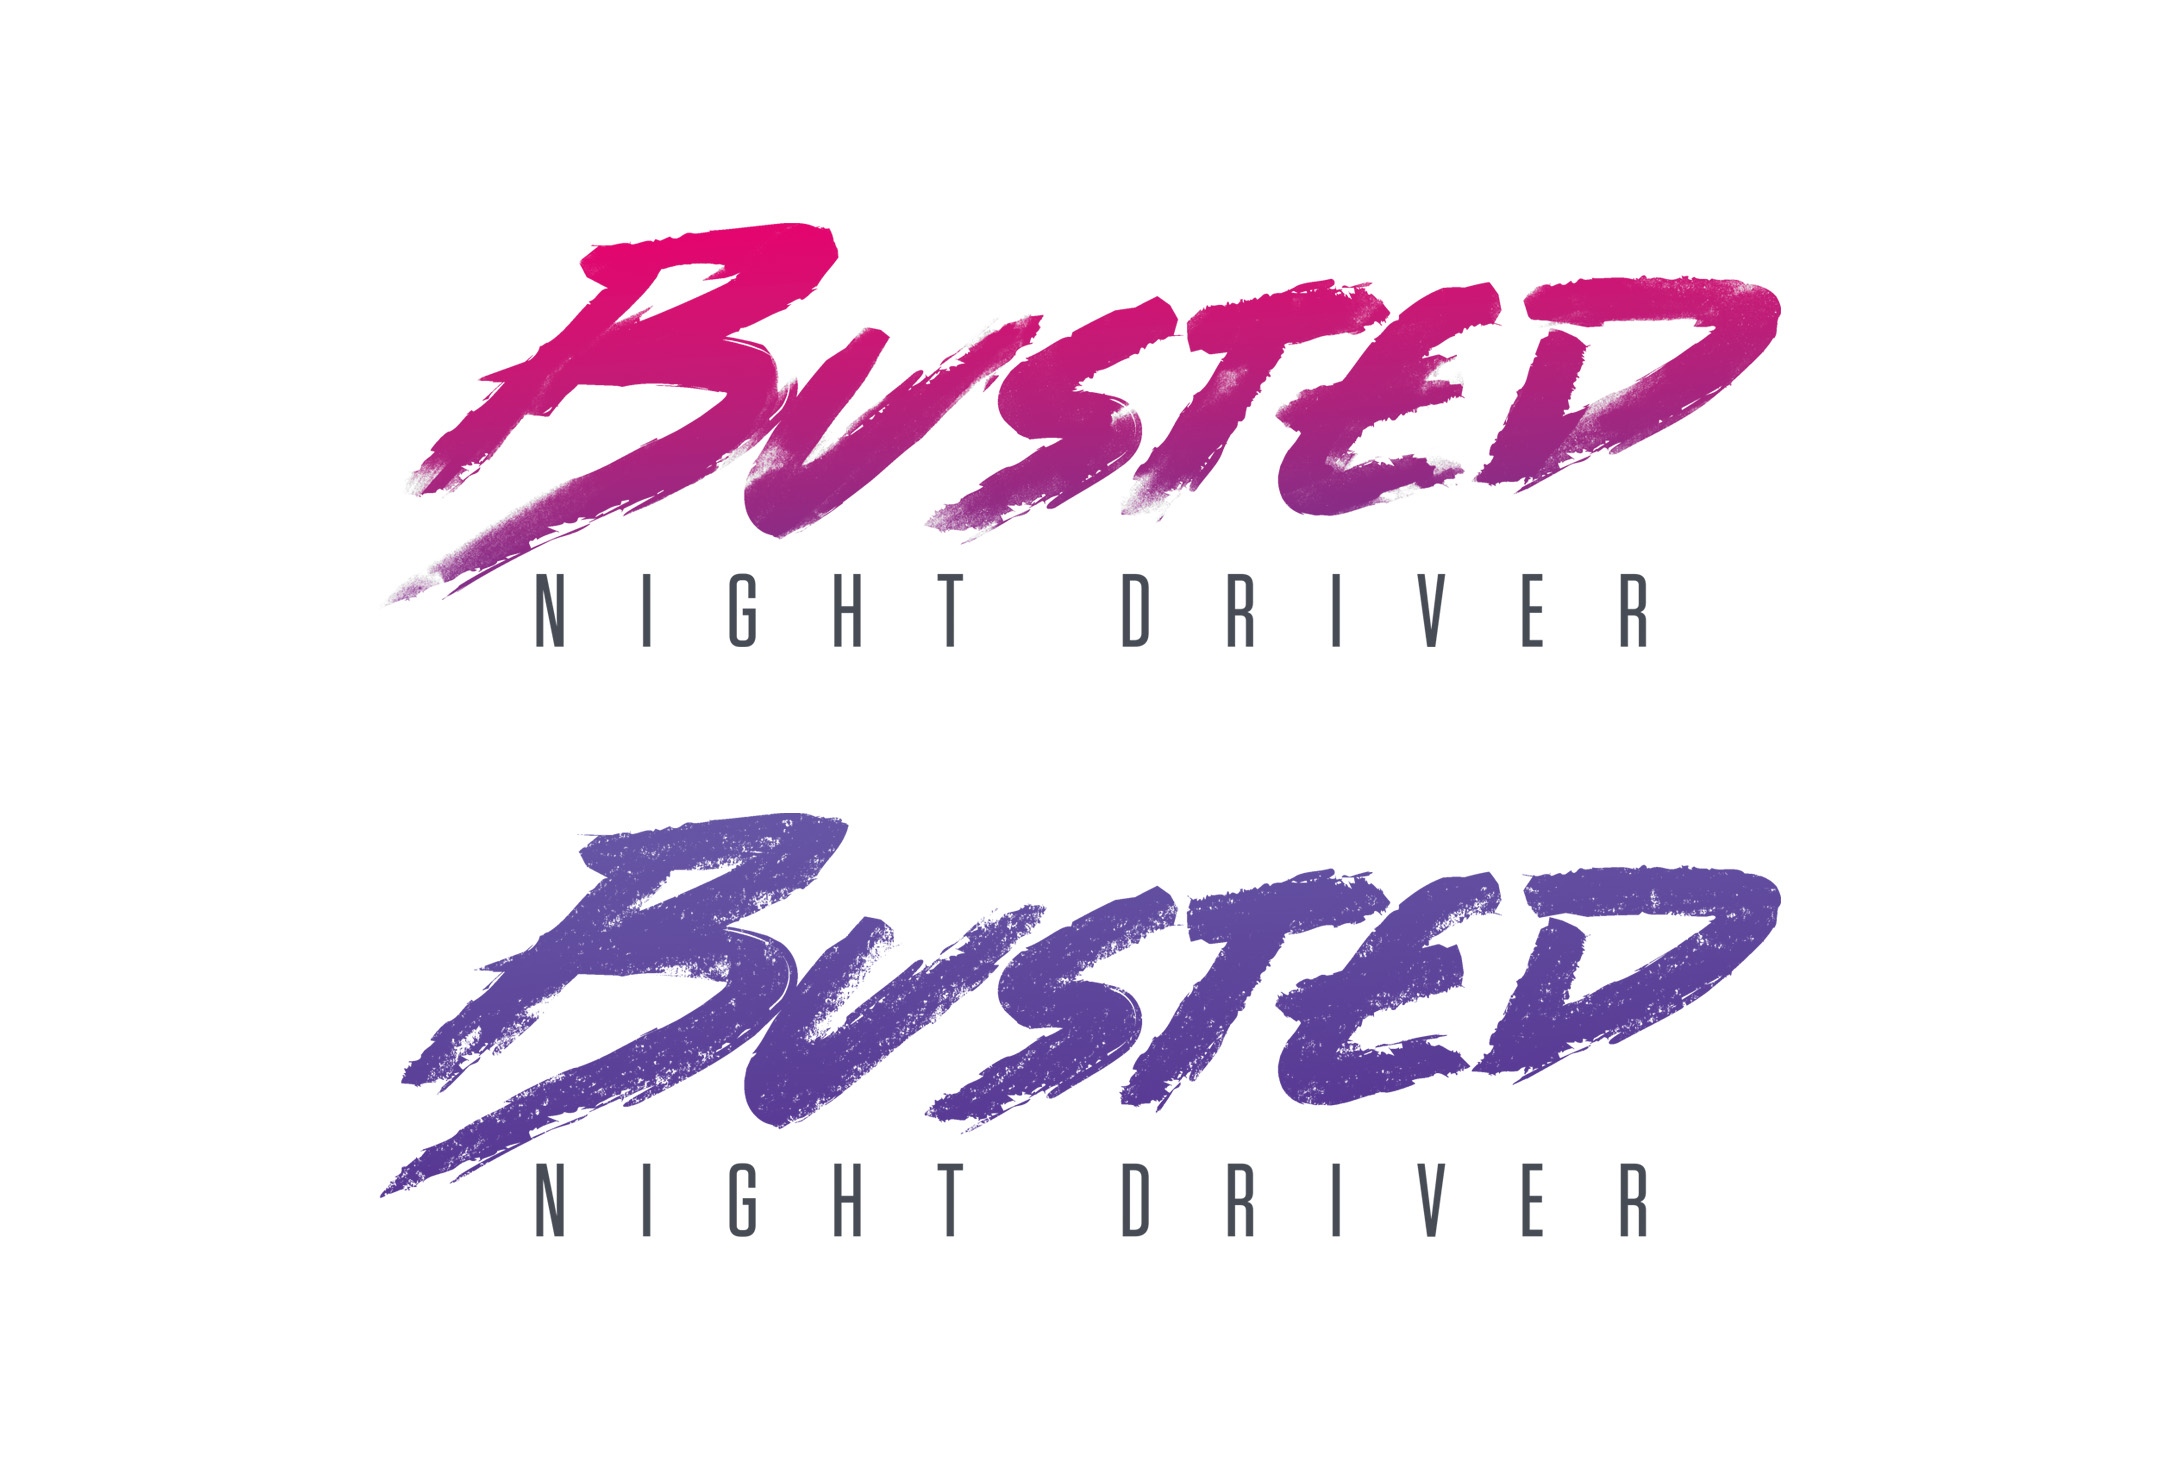 ZIP_BUSTED_NEWS1-2_0002_logo